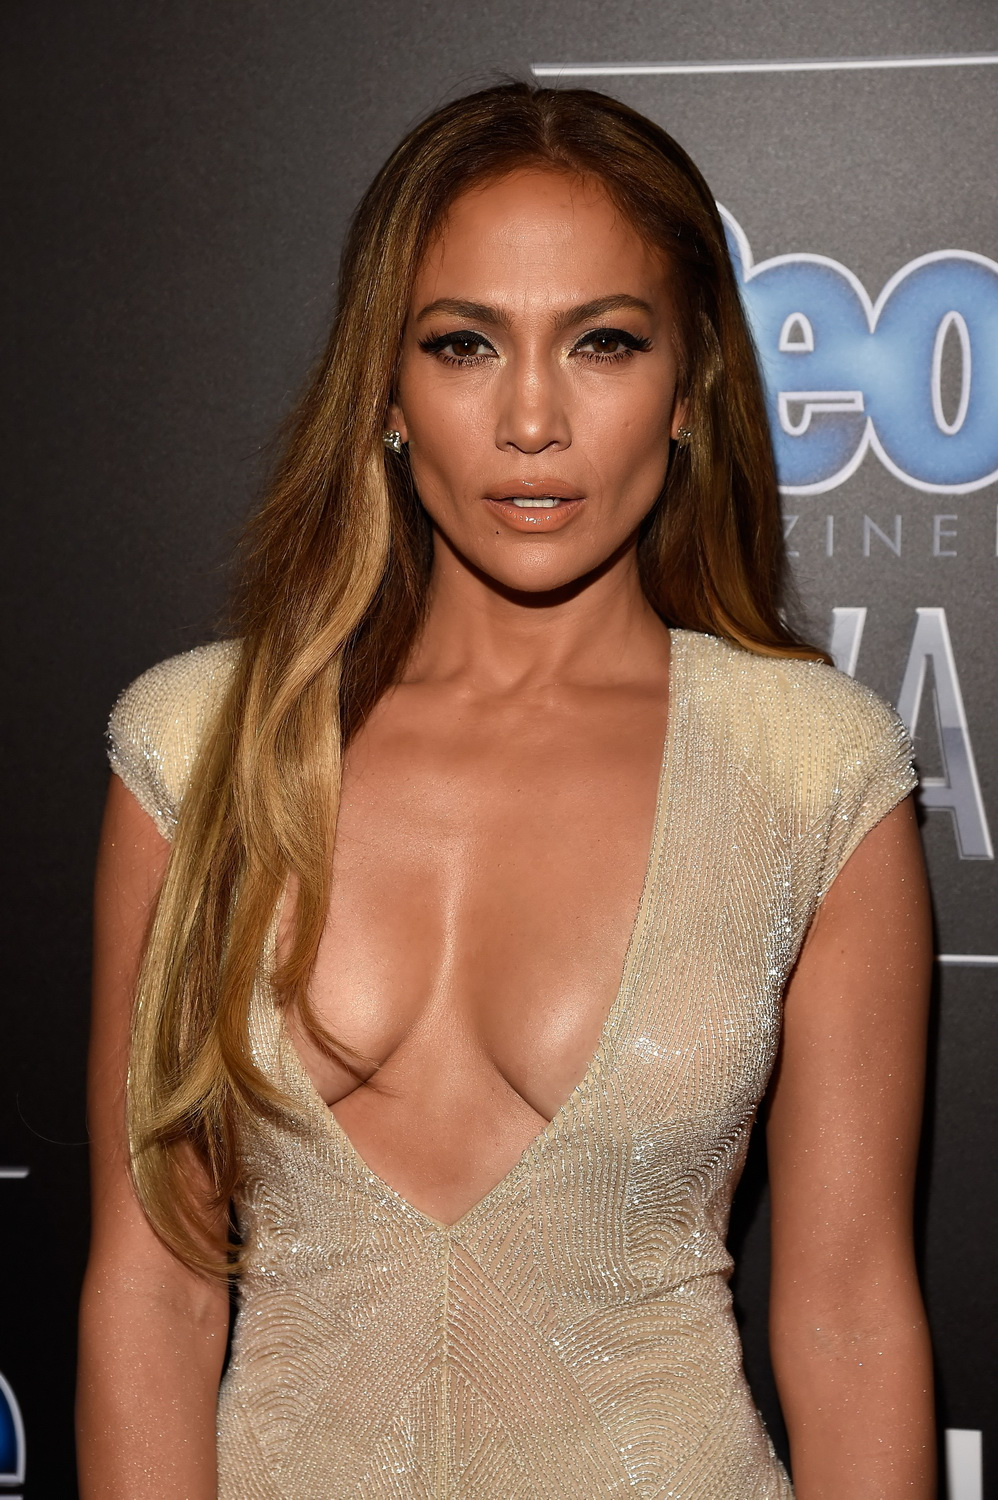 jennifer-lopez-deep-cleavage-at-the-people-magazine-awards-8.jpg